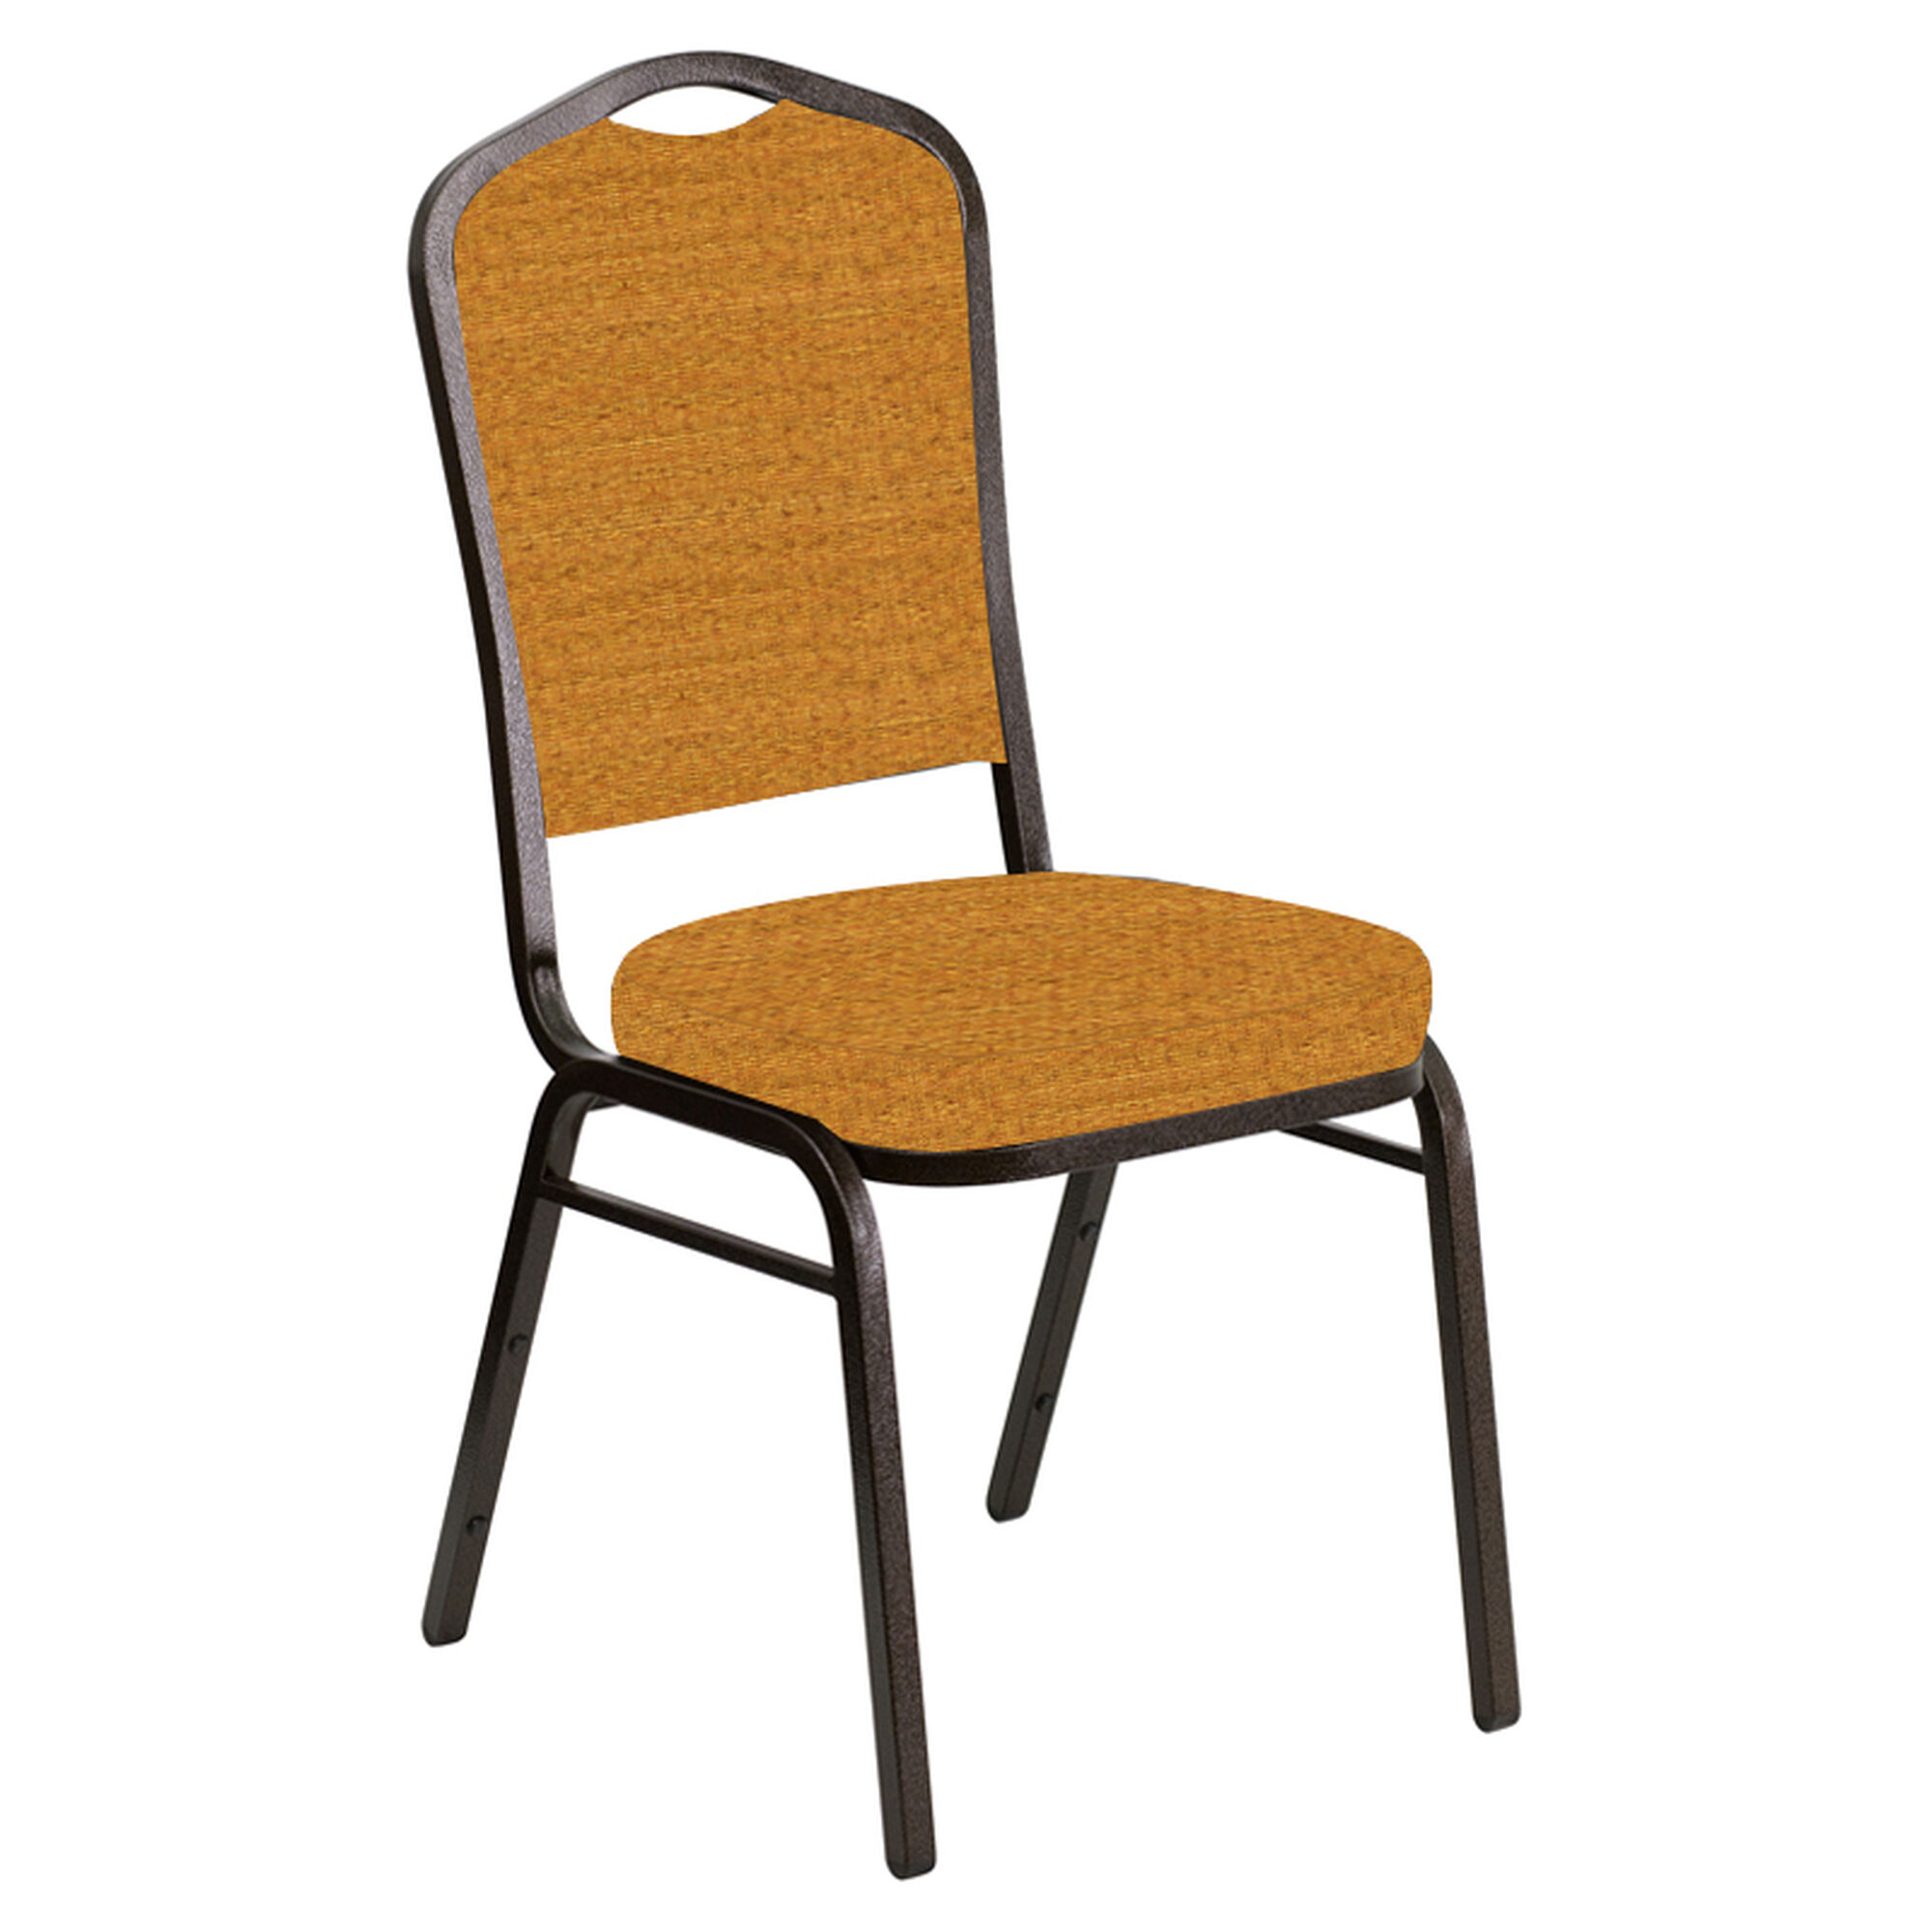 Embroidered Crown Back Banquet Chair in Highlands Titan Fabric - Gold Vein  Frame